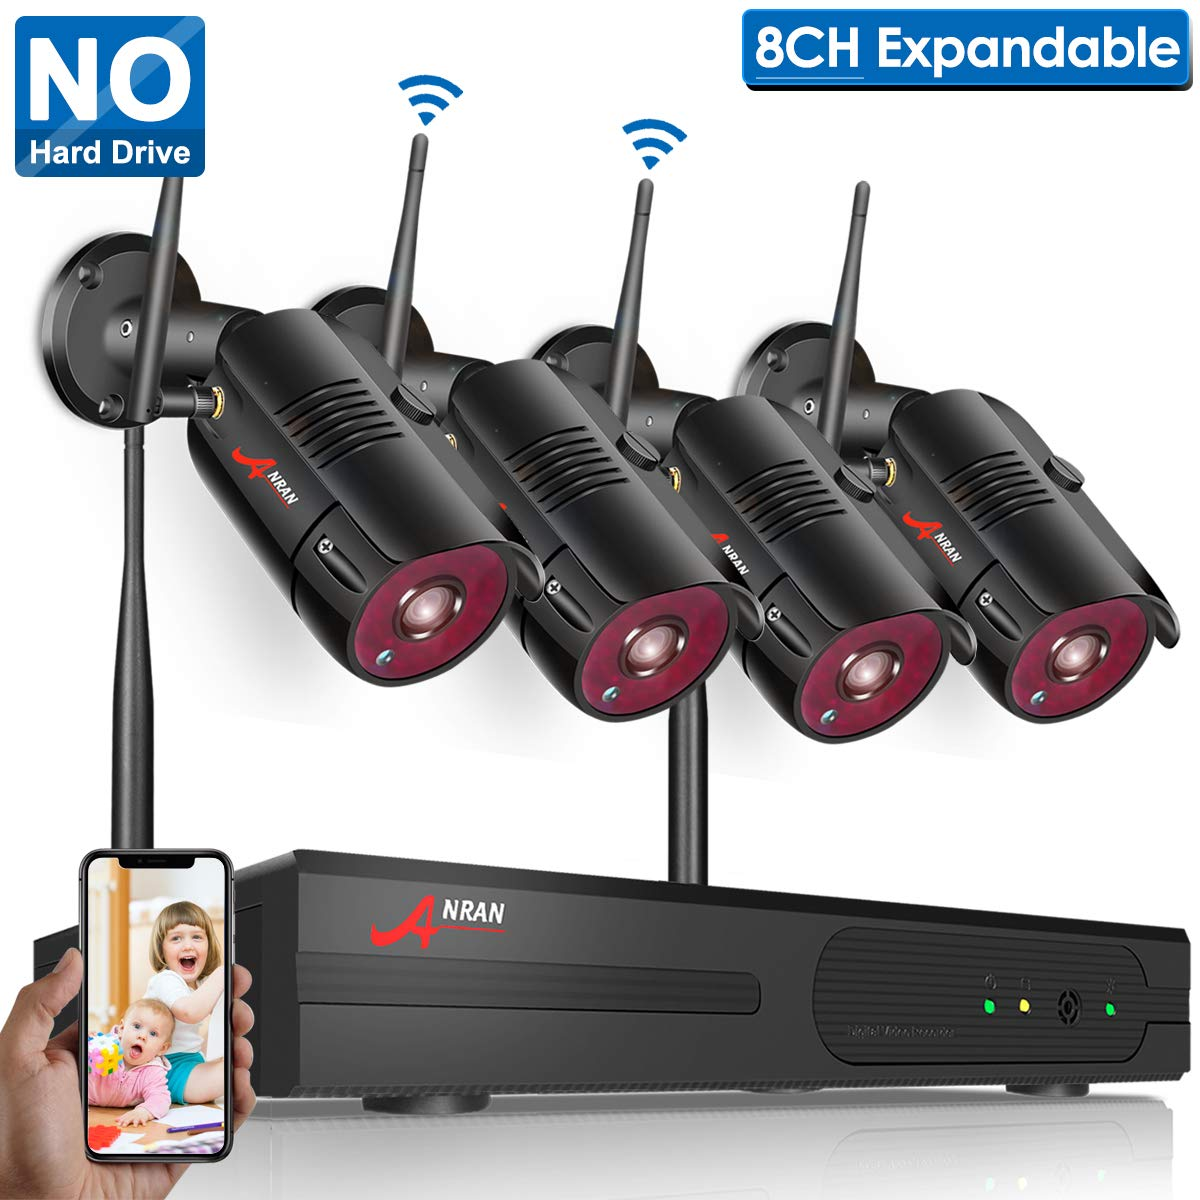 【2019 New】Wireless Surveillance Camera System,1080P NVR 8 Ch home camera system (NO Hard Drive) with ANRAN 4pcs 960P (1.3 Megapixel) Indoor/Outdoor Wireless IP Cameras, Easy Remote View, P2P, Free APP by ANRAN